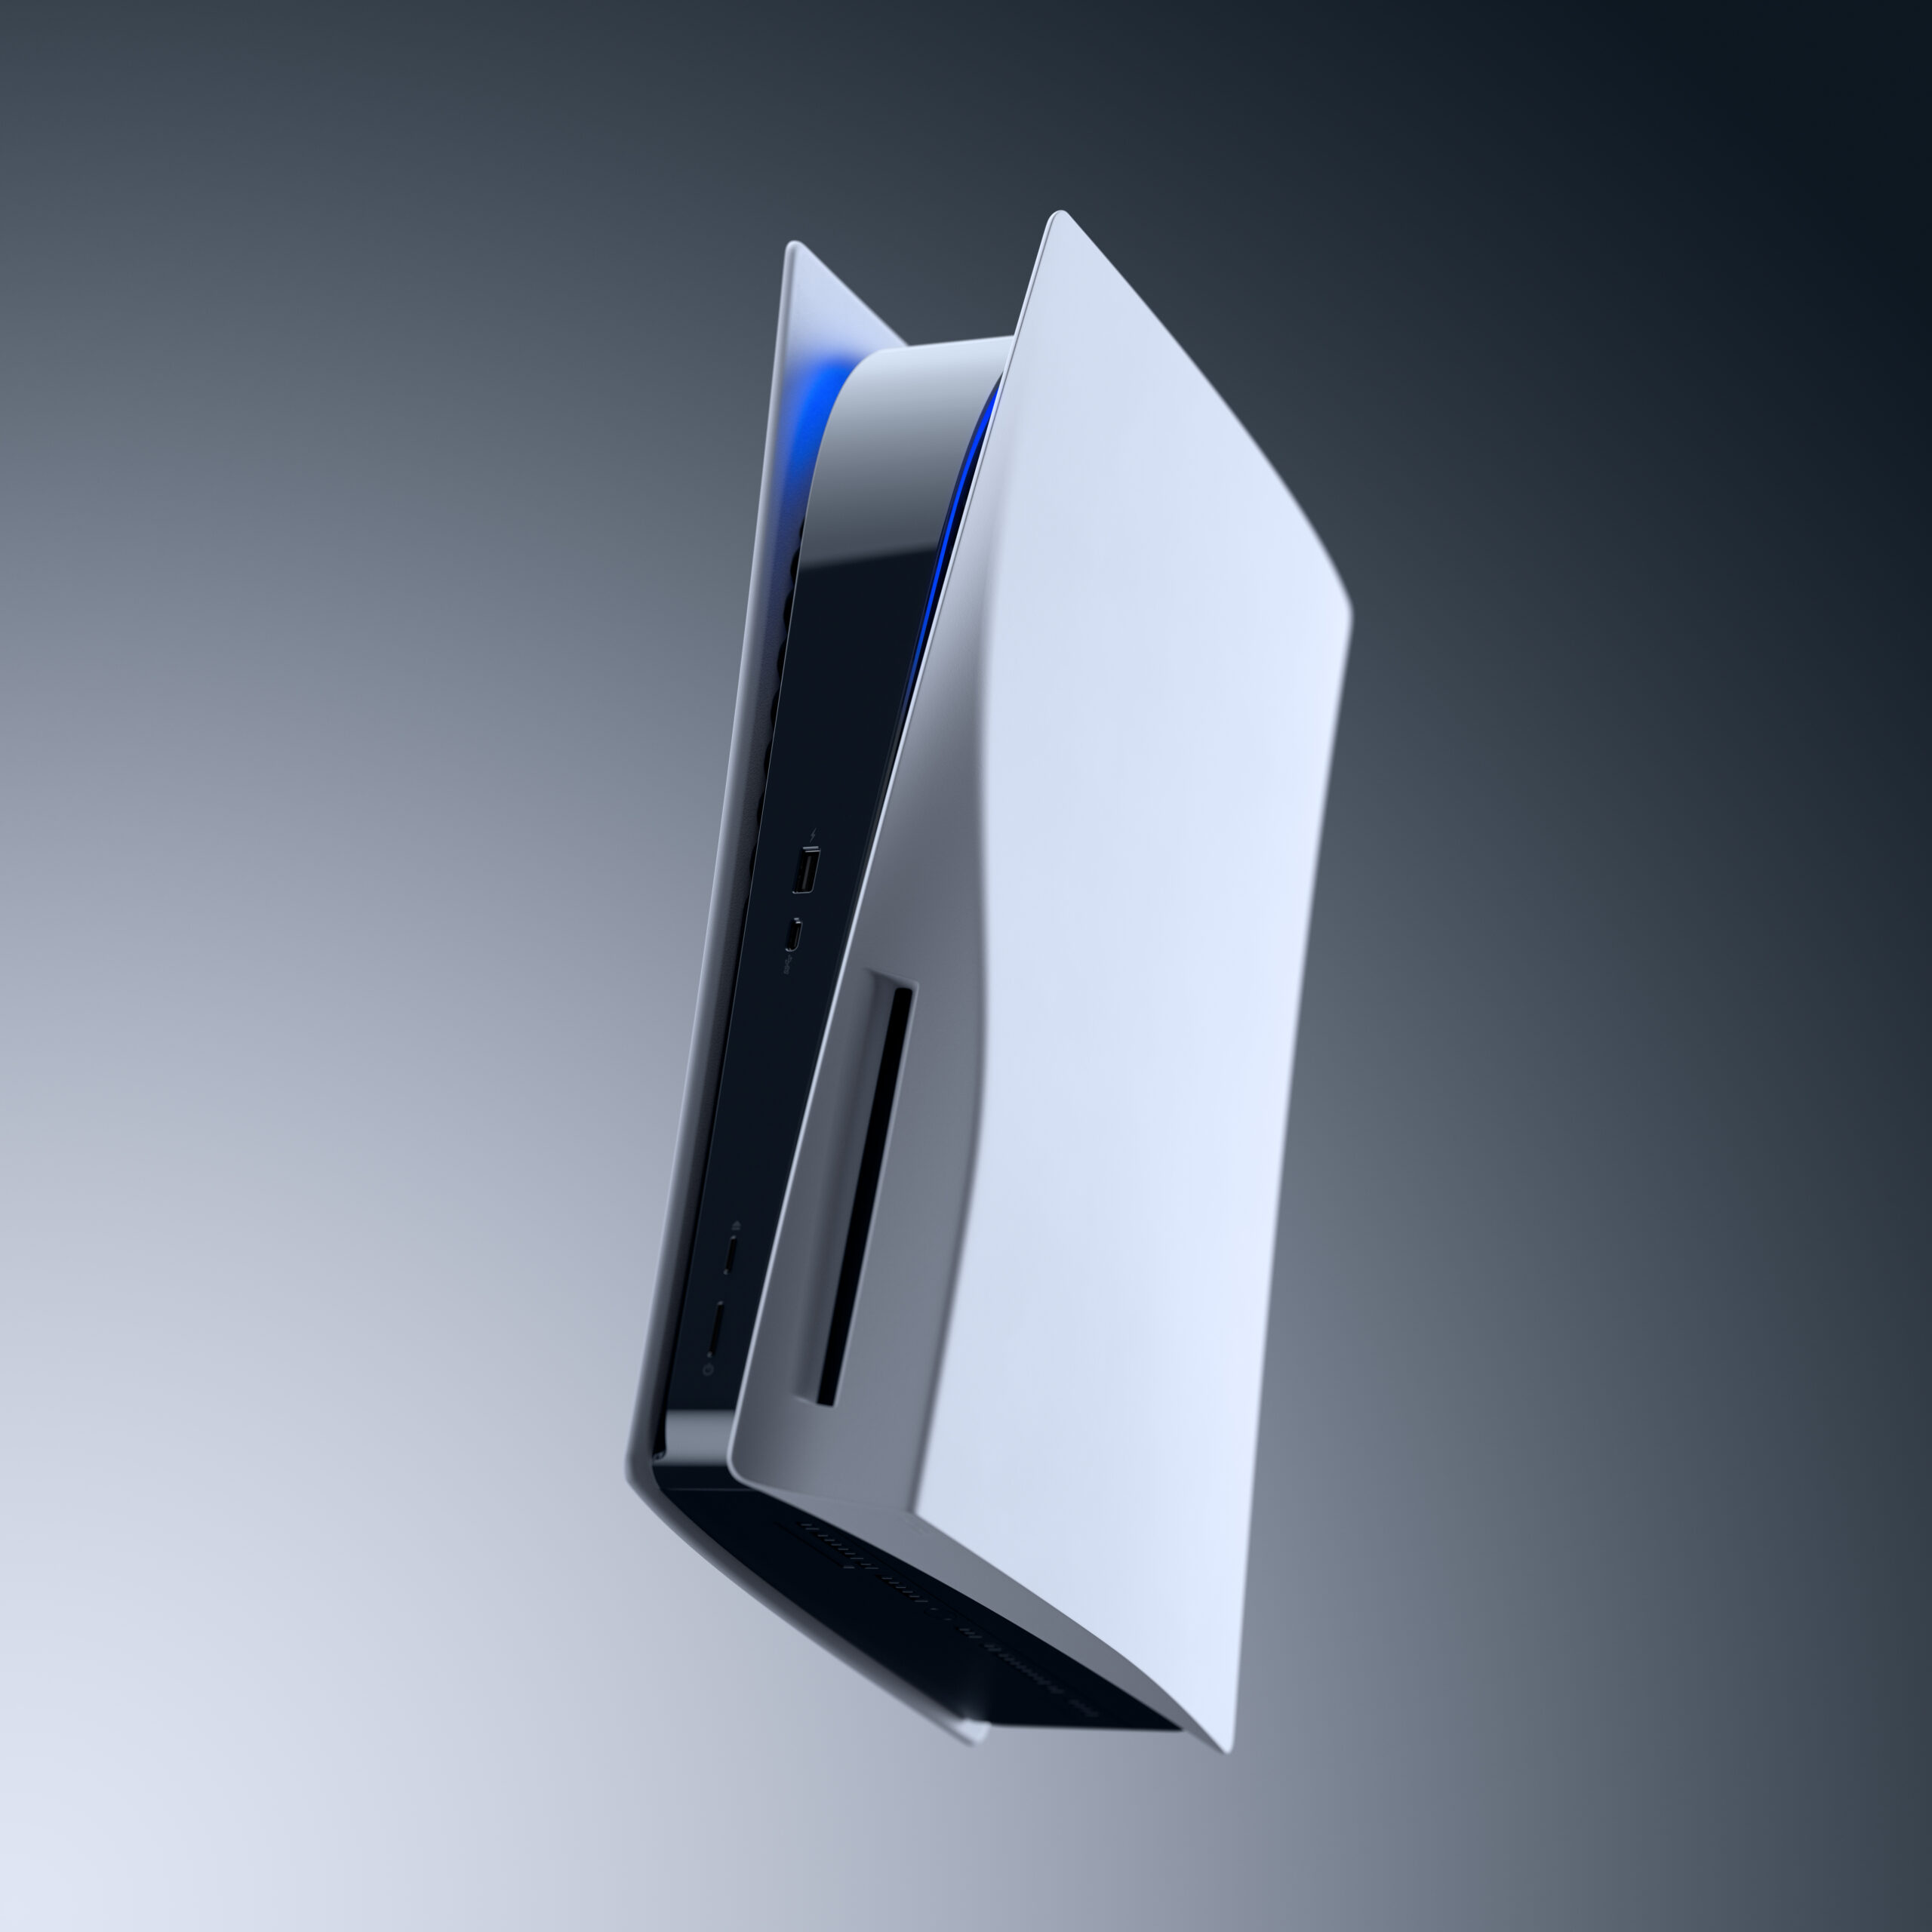 PS5 Hardware and Accessories 4